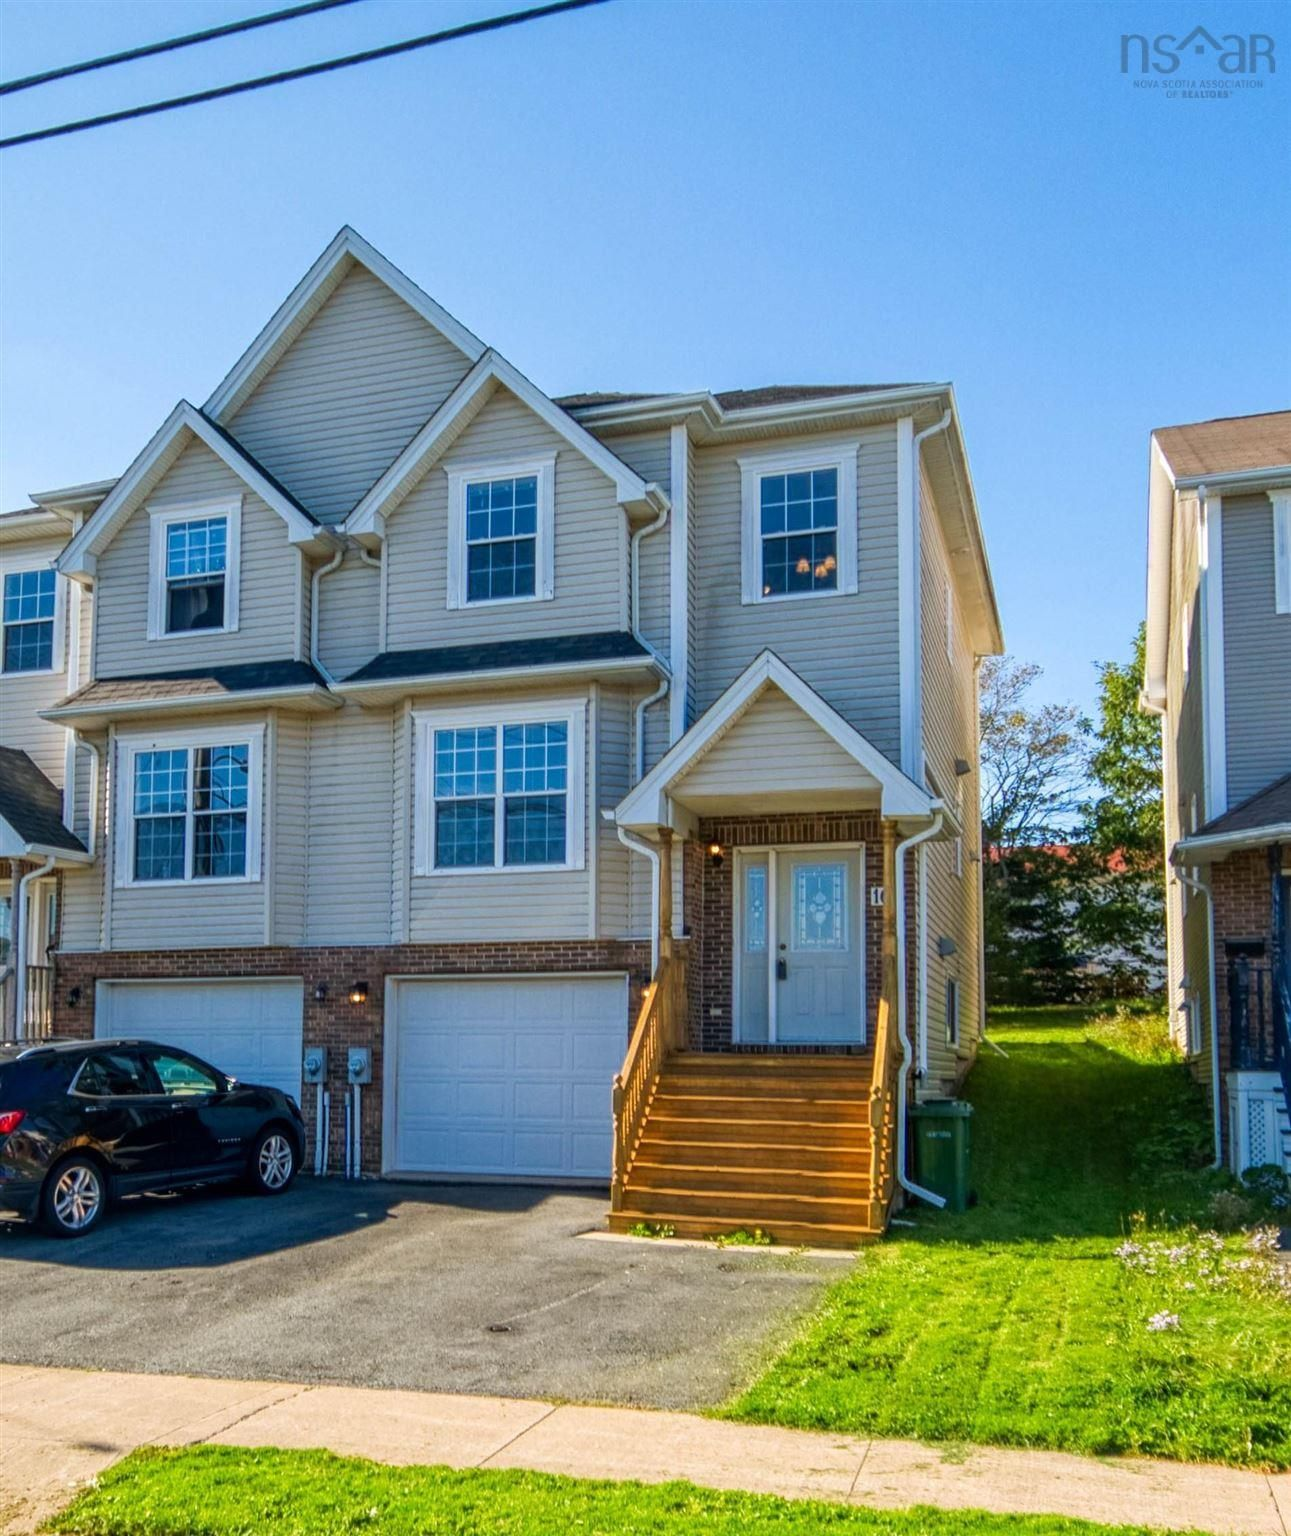 Main Photo: 163 Green Village Lane in Dartmouth: 12-Southdale, Manor Park Residential for sale (Halifax-Dartmouth)  : MLS®# 202125422